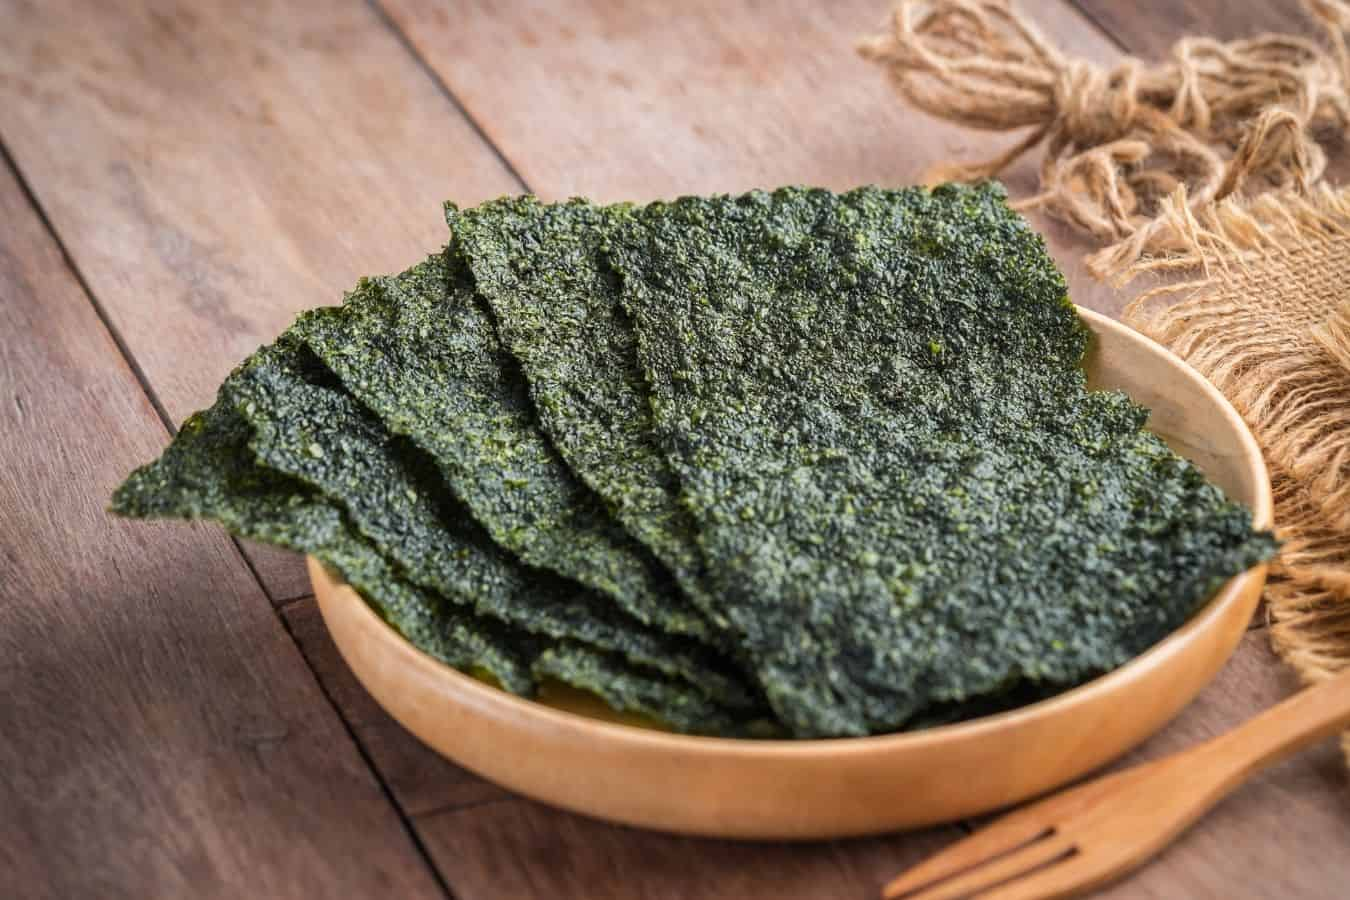 How To Use Seaweed For Hair